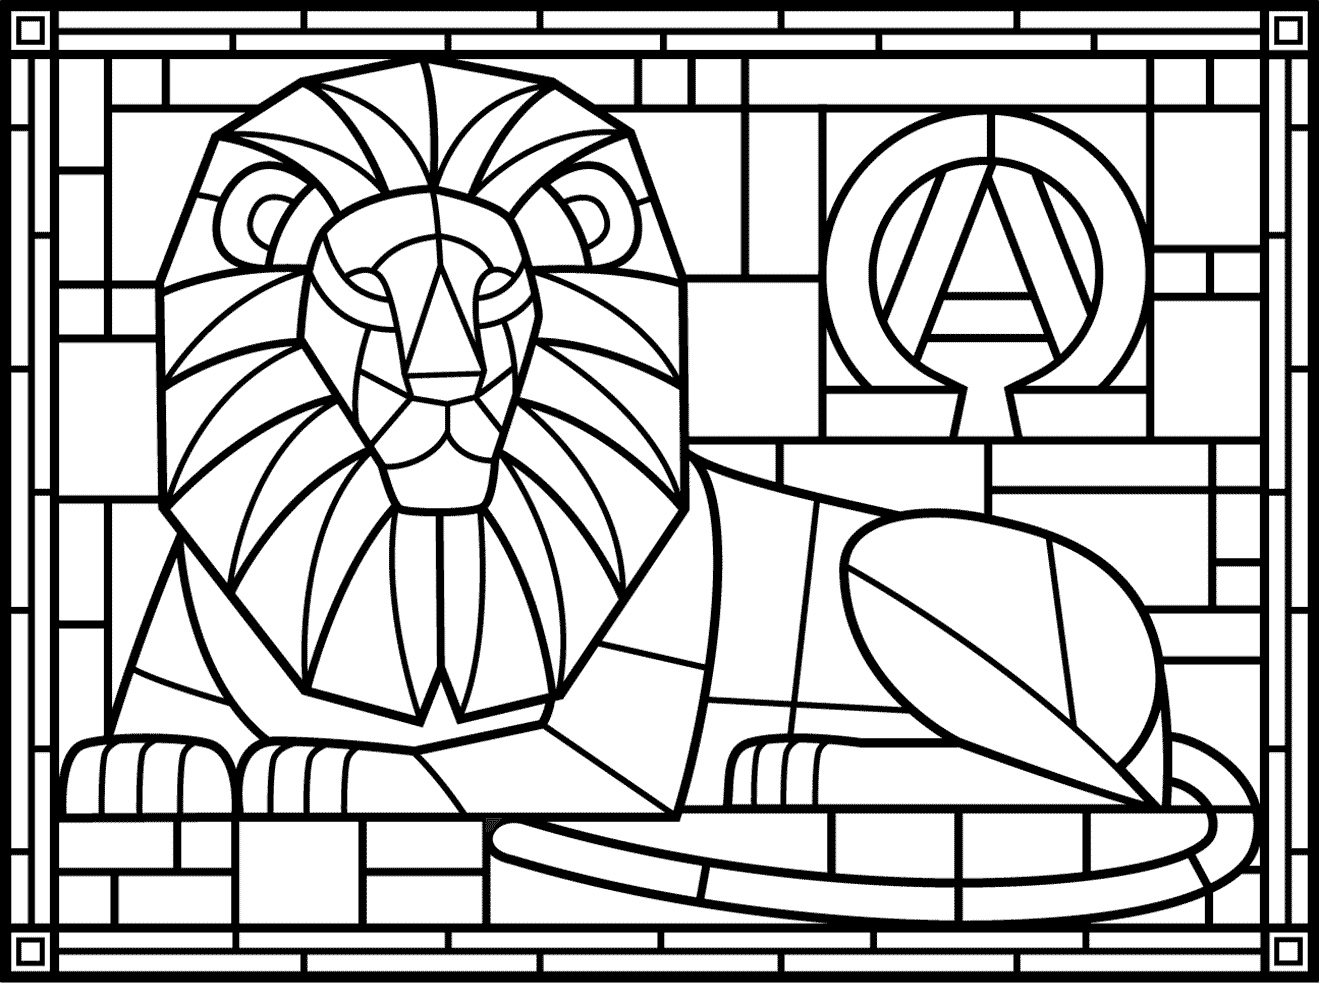 Stained Glass Coloring Pages For Adults Best Coloring Pages For Kids